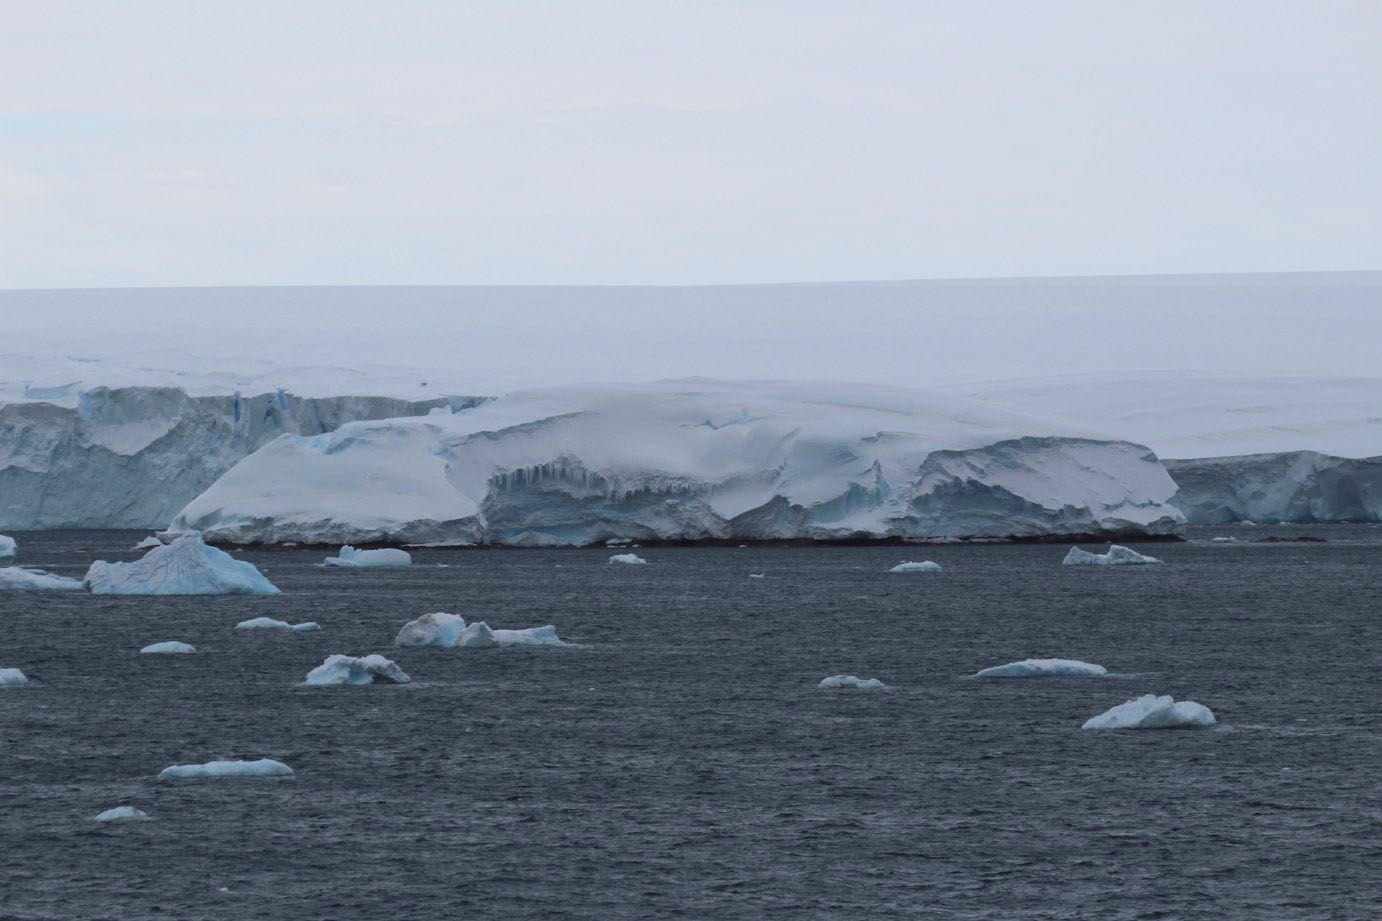 long view of a bleak and icy Sif Island, a new island formed in Antarctica